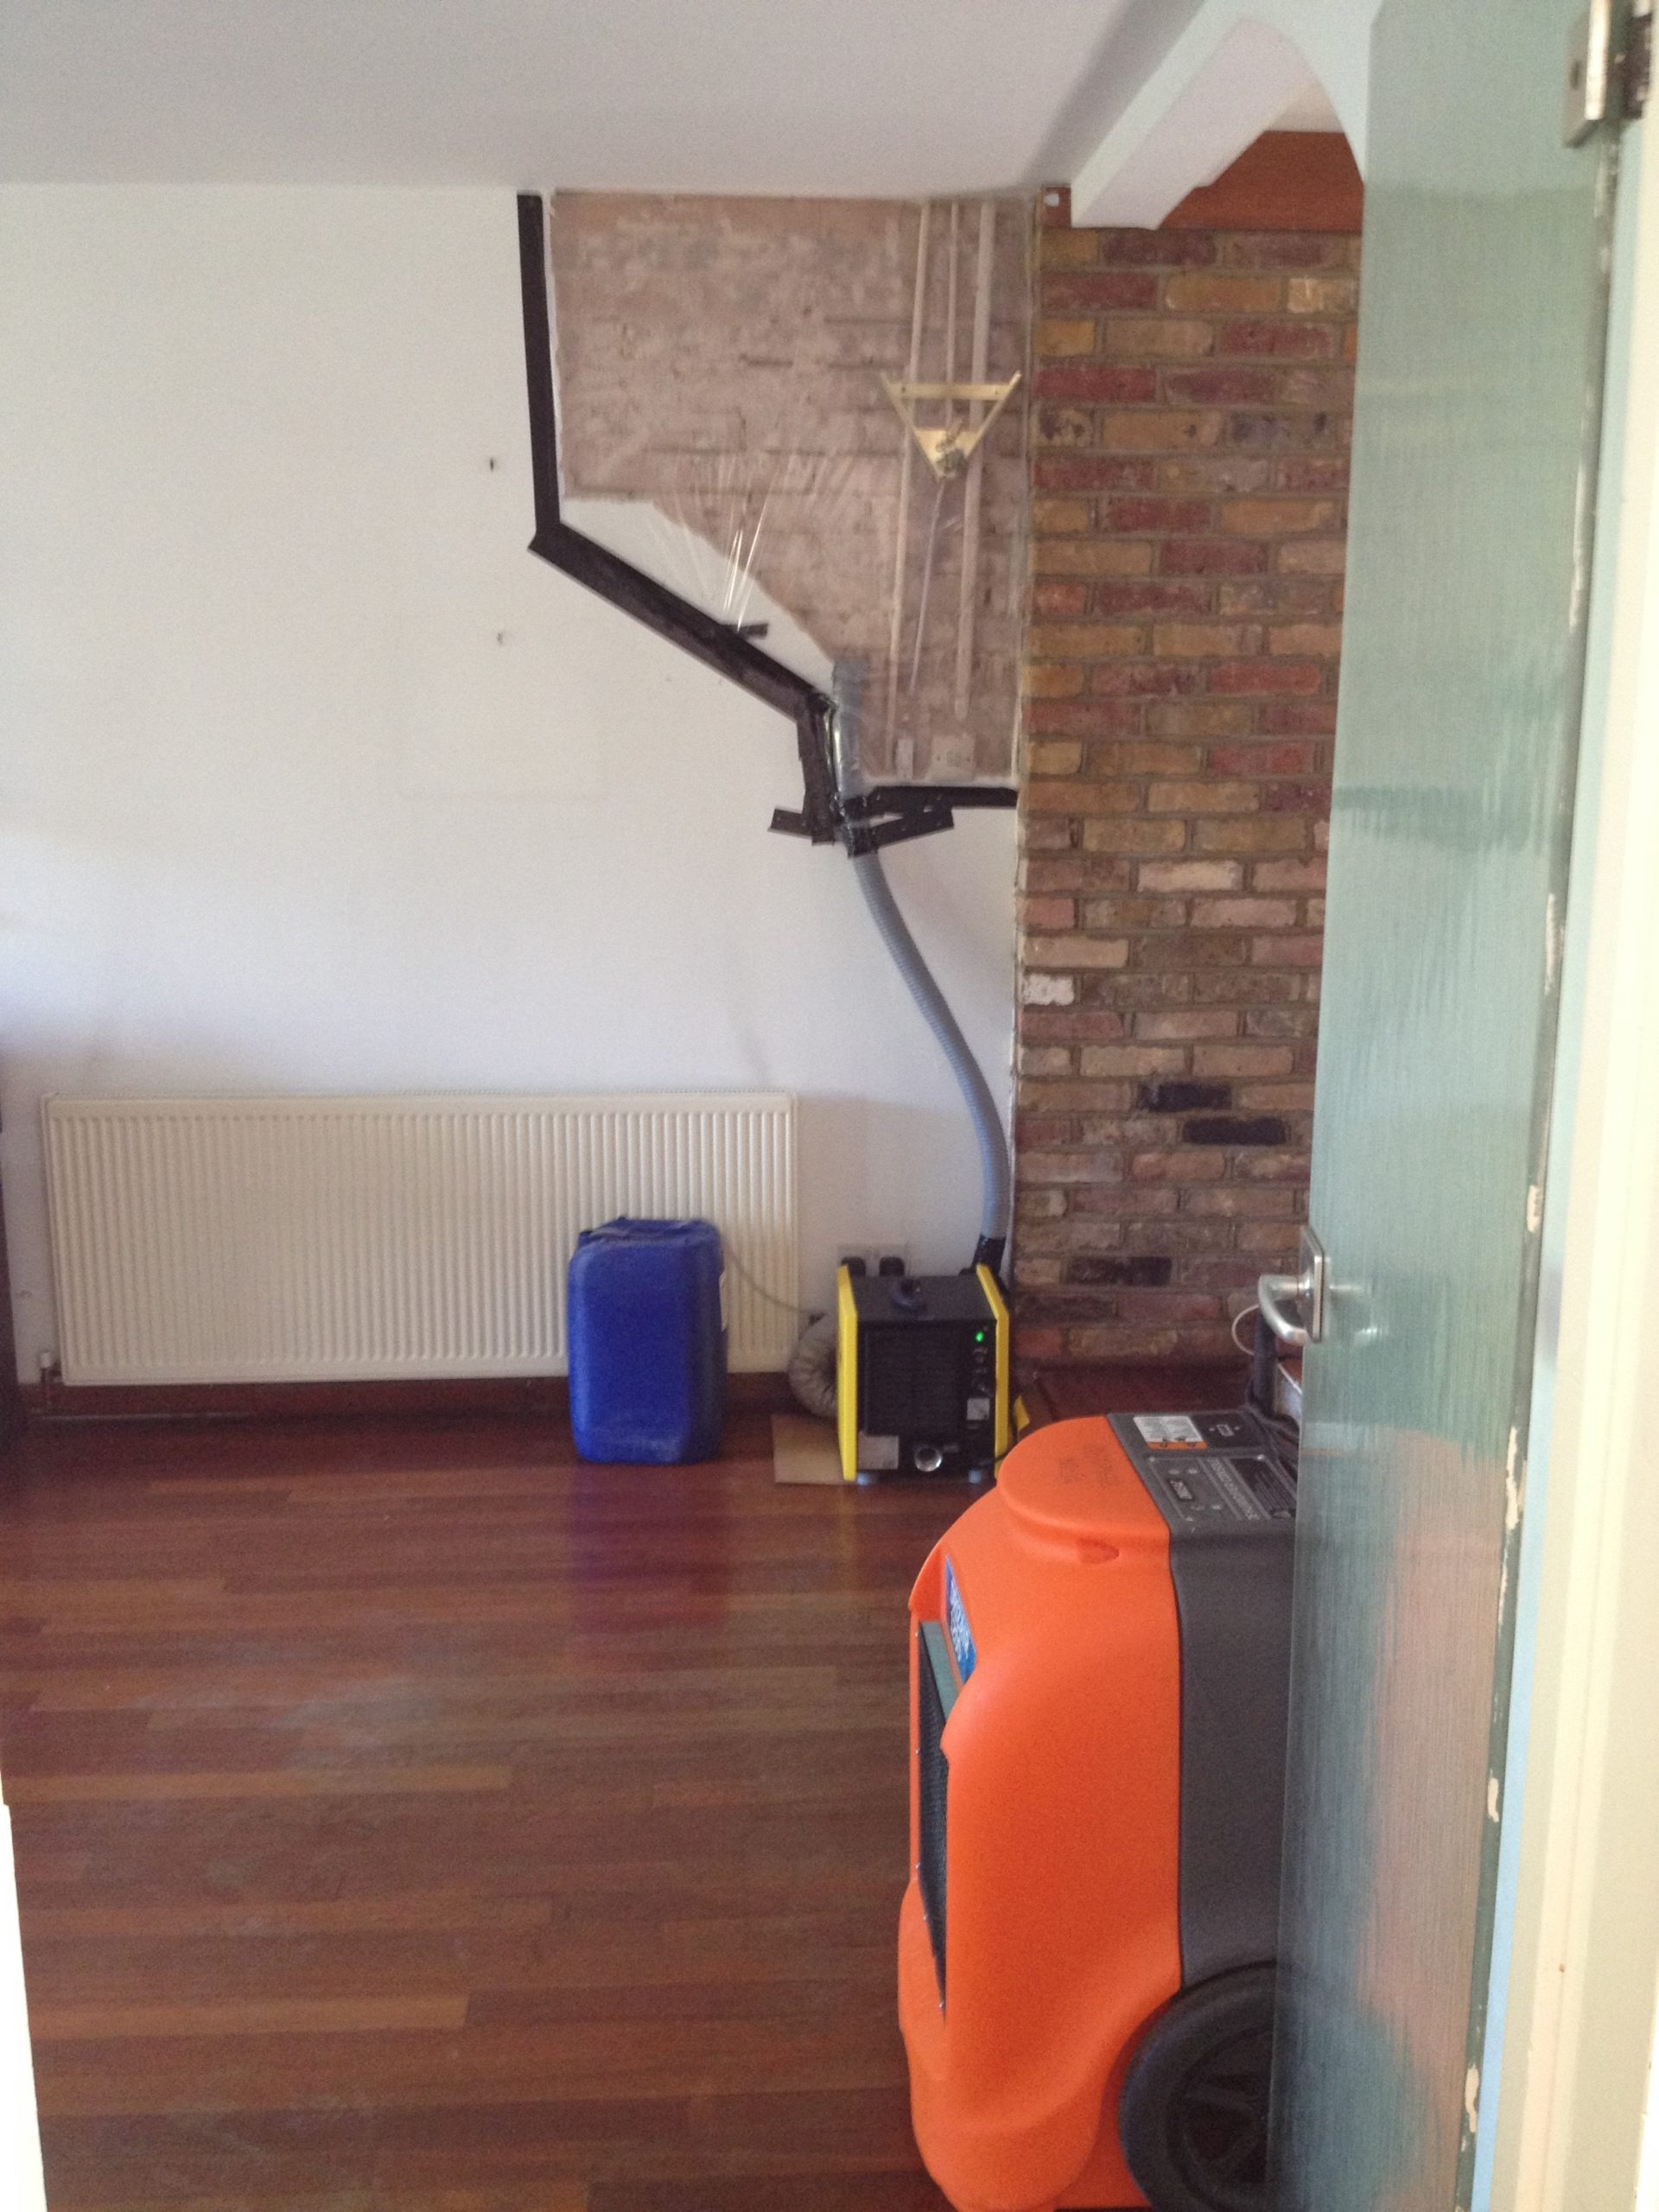 drying equipment in London property